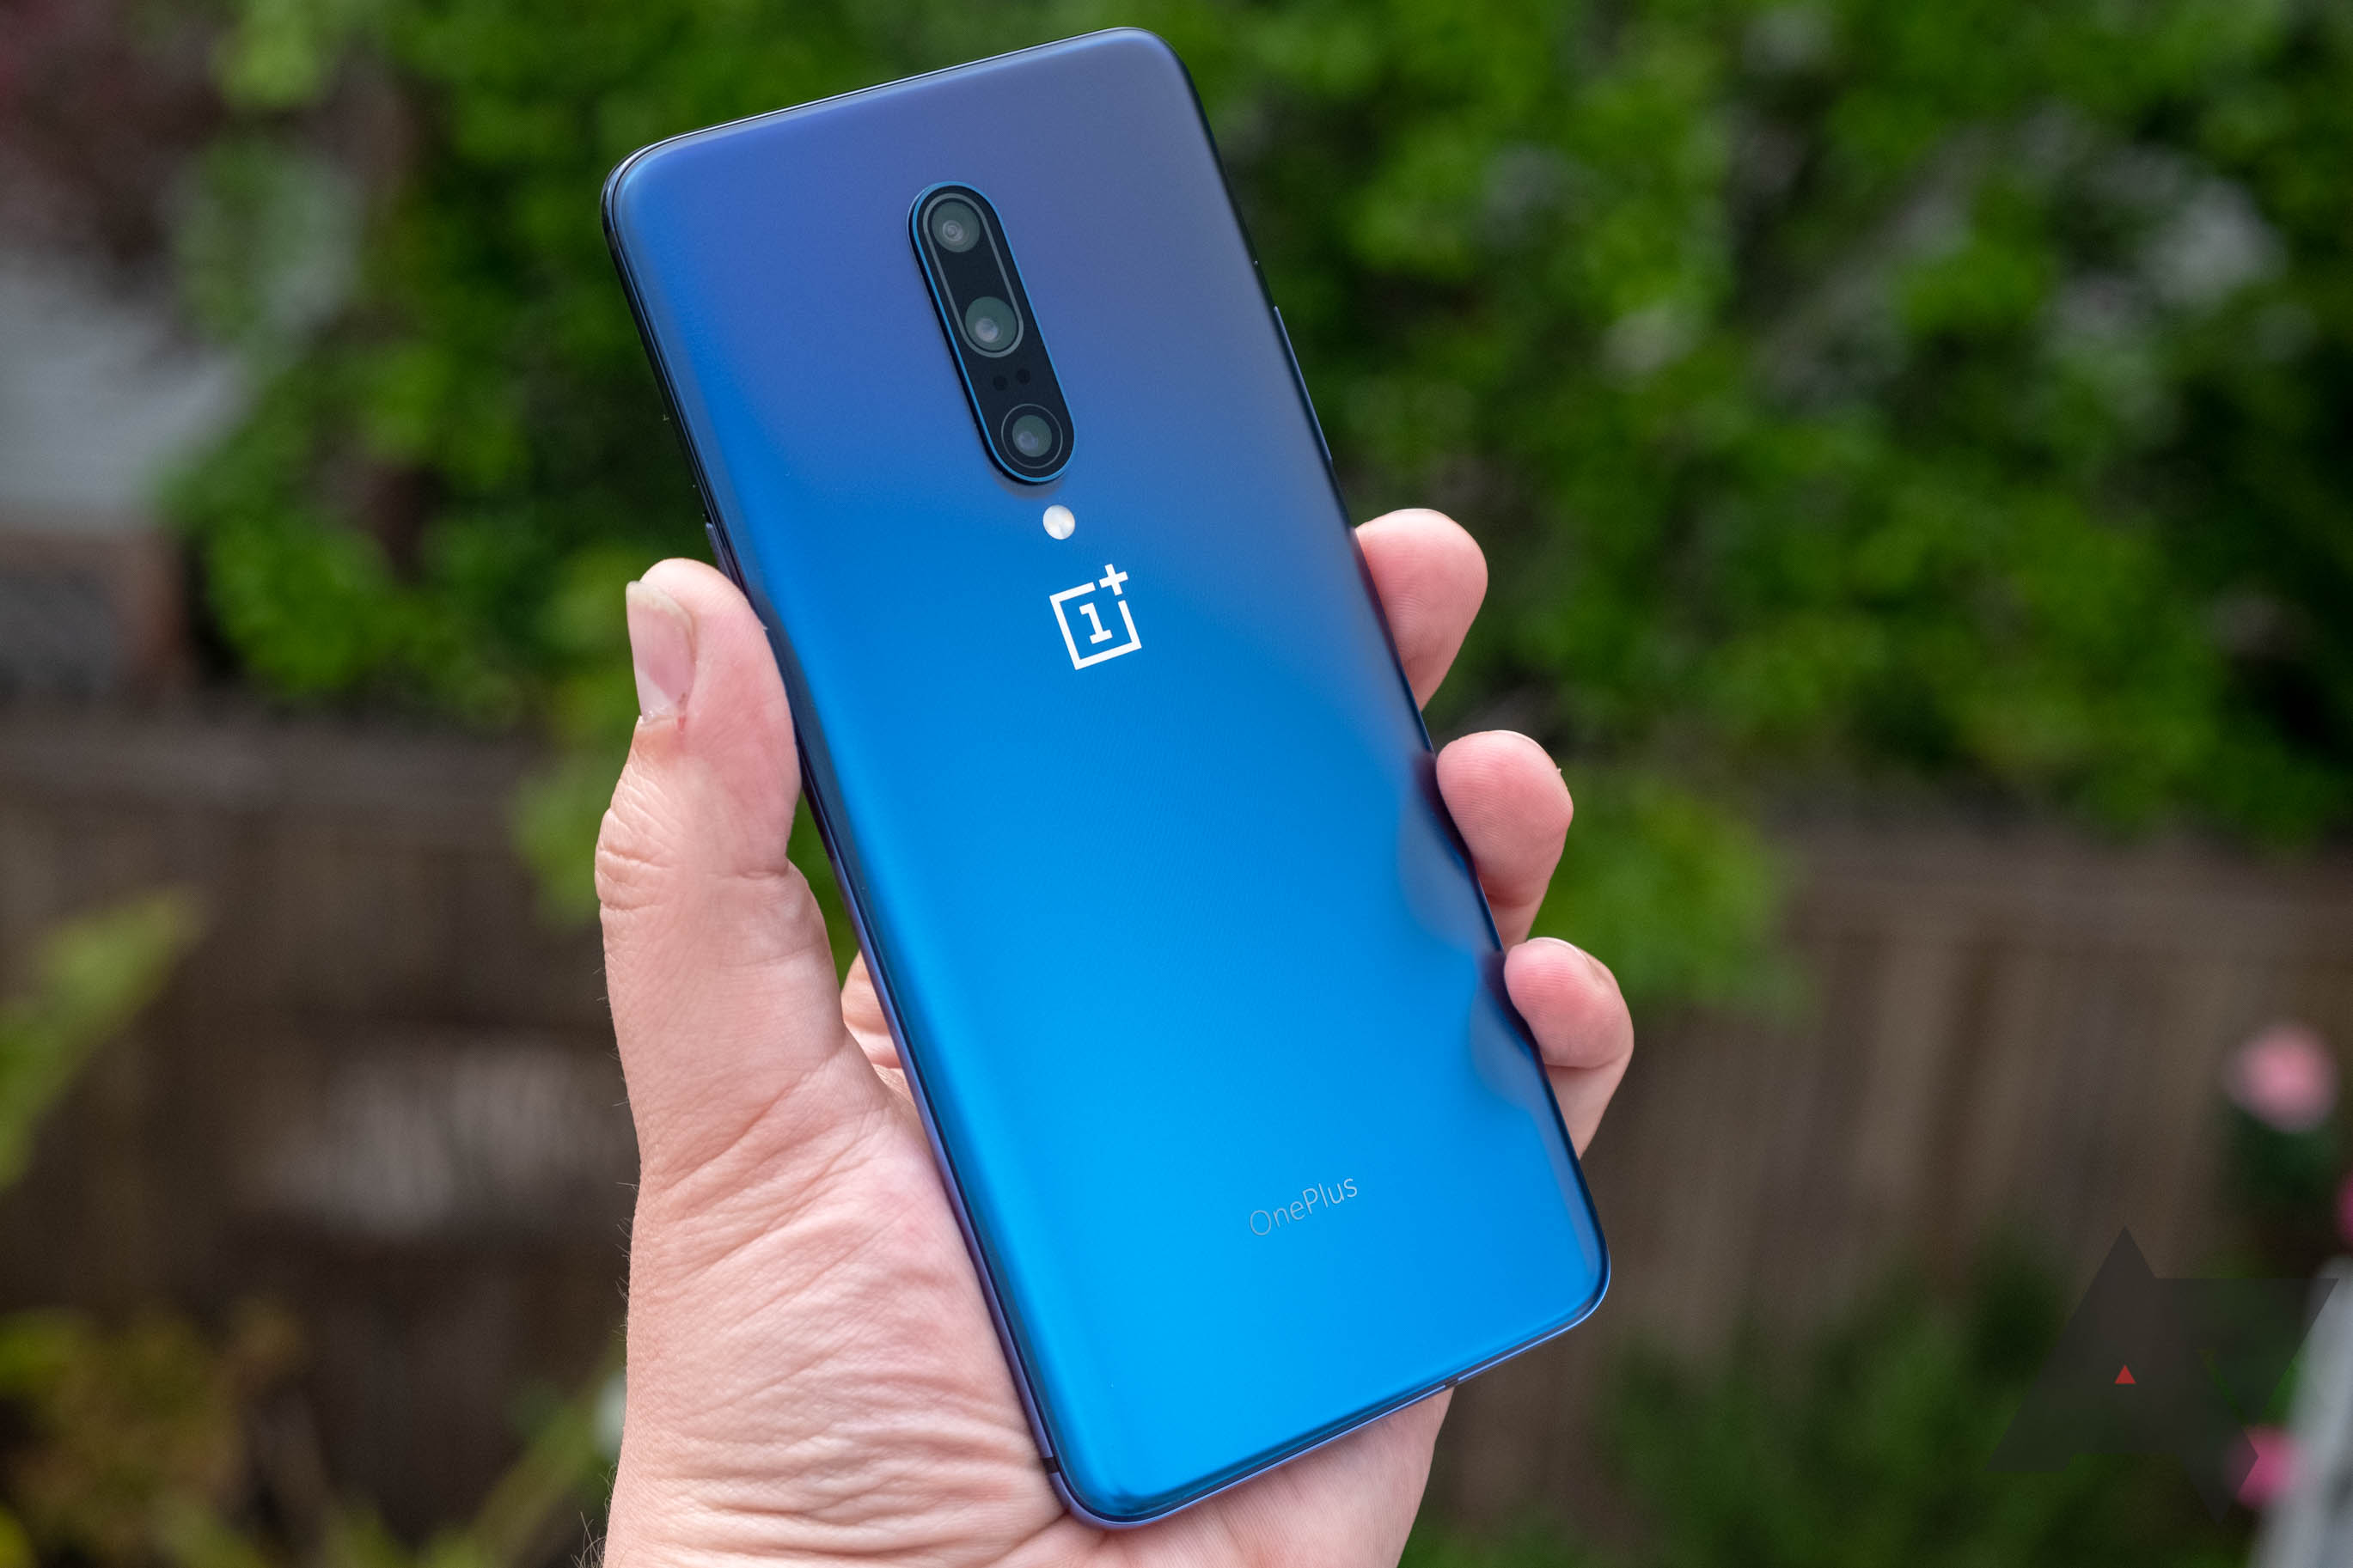 The best Android phones you can buy right now (Summer 2019)